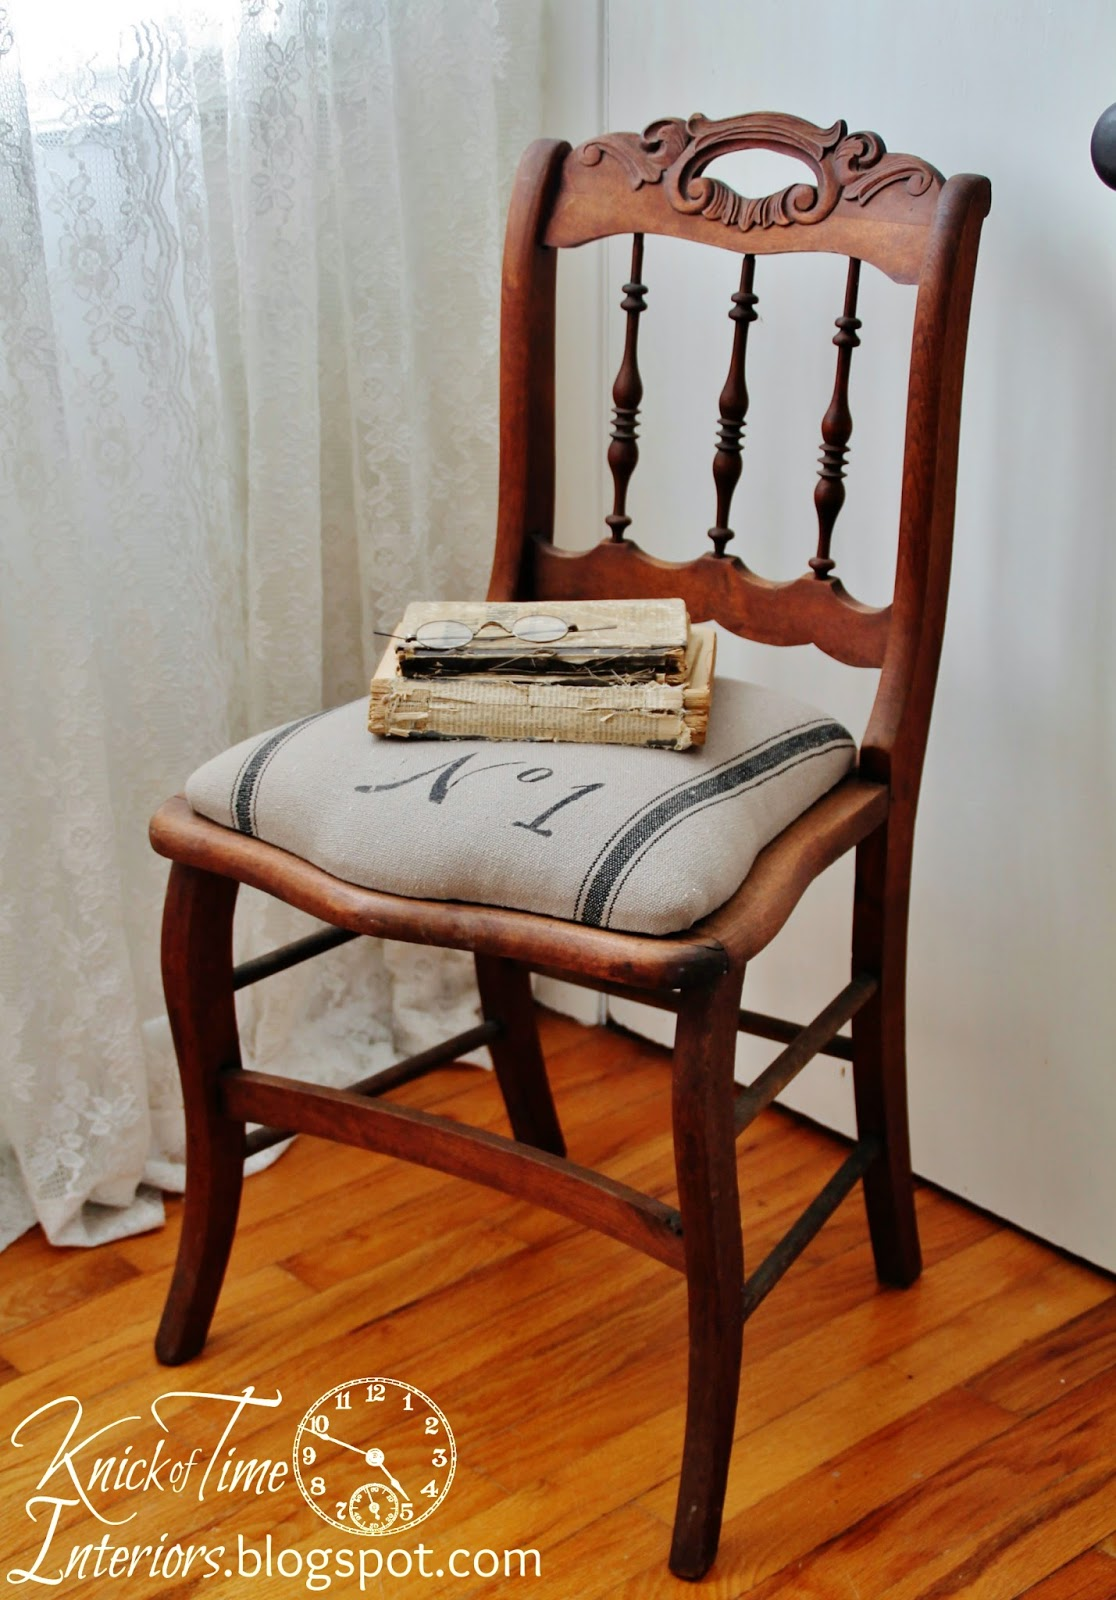 Grain-sack-fabric-on-antique-chair